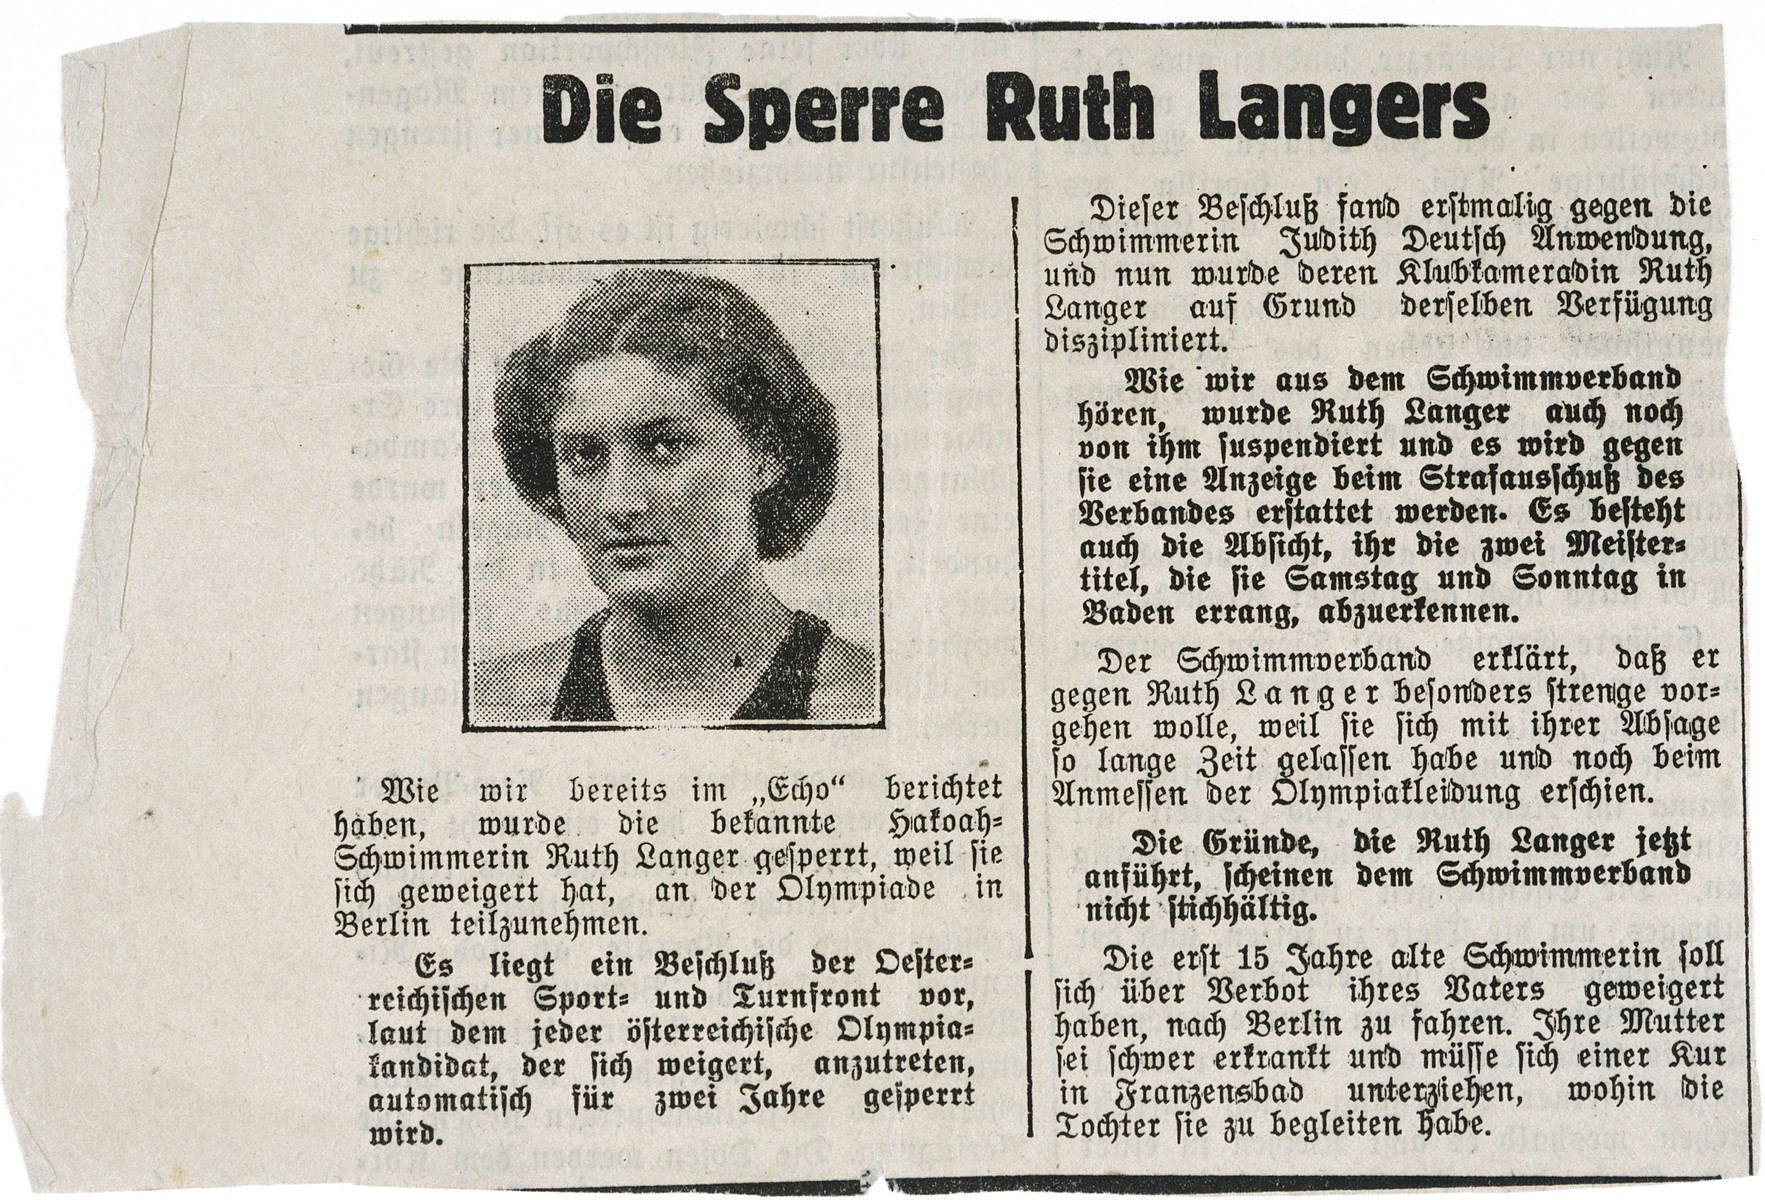 Newspaper article announcing the exclusion of Ruth Langer from Austrian swimming events because of her refusal to participate in the Berlin Olympics.